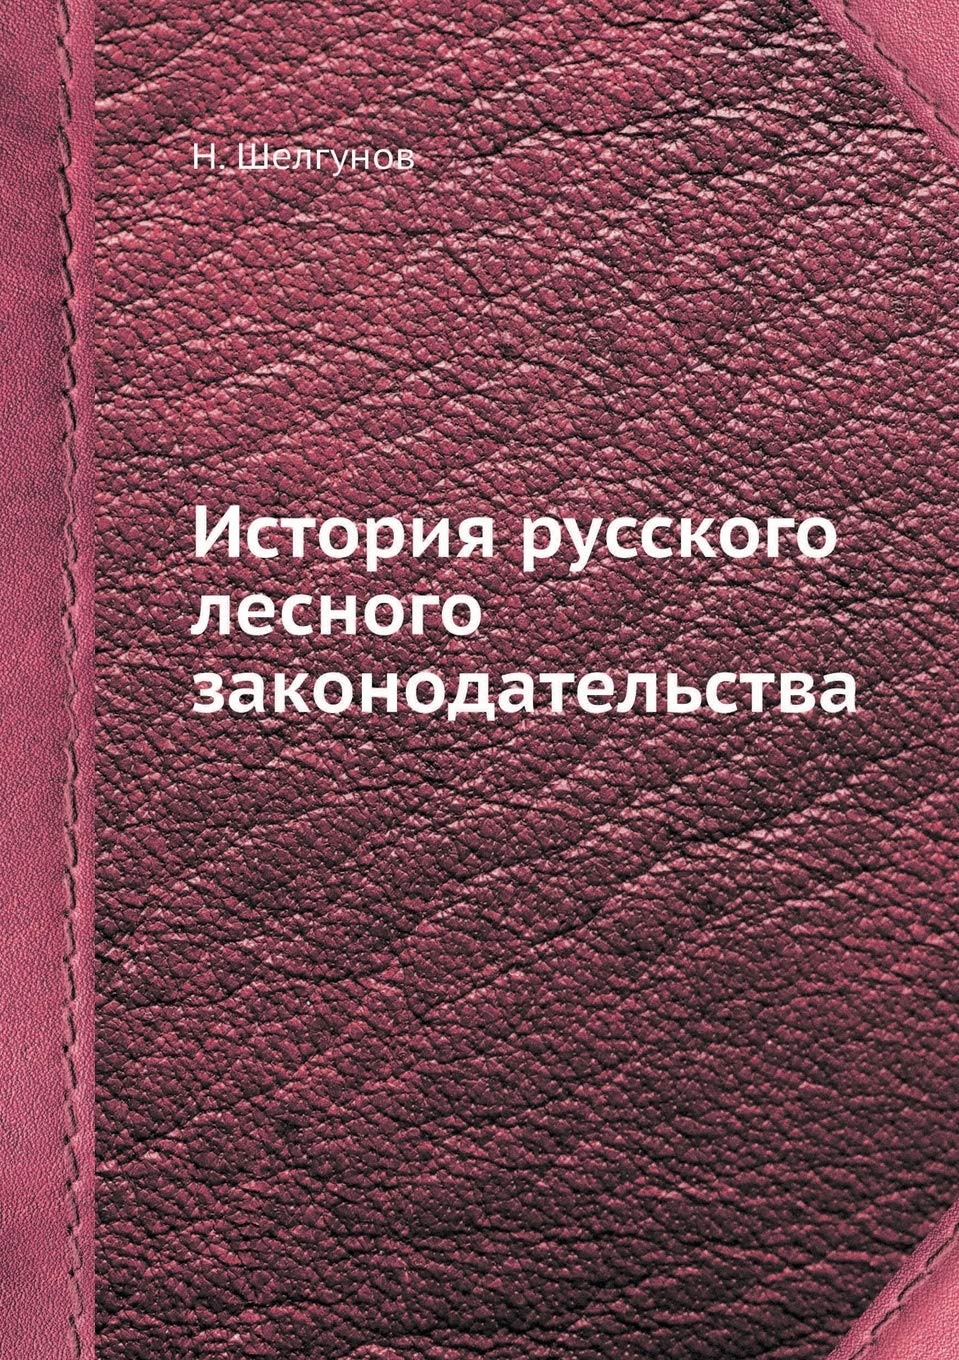 Download Istoriya Russkogo Lesnogo Zakonodatelstva (Russian Edition) PDF